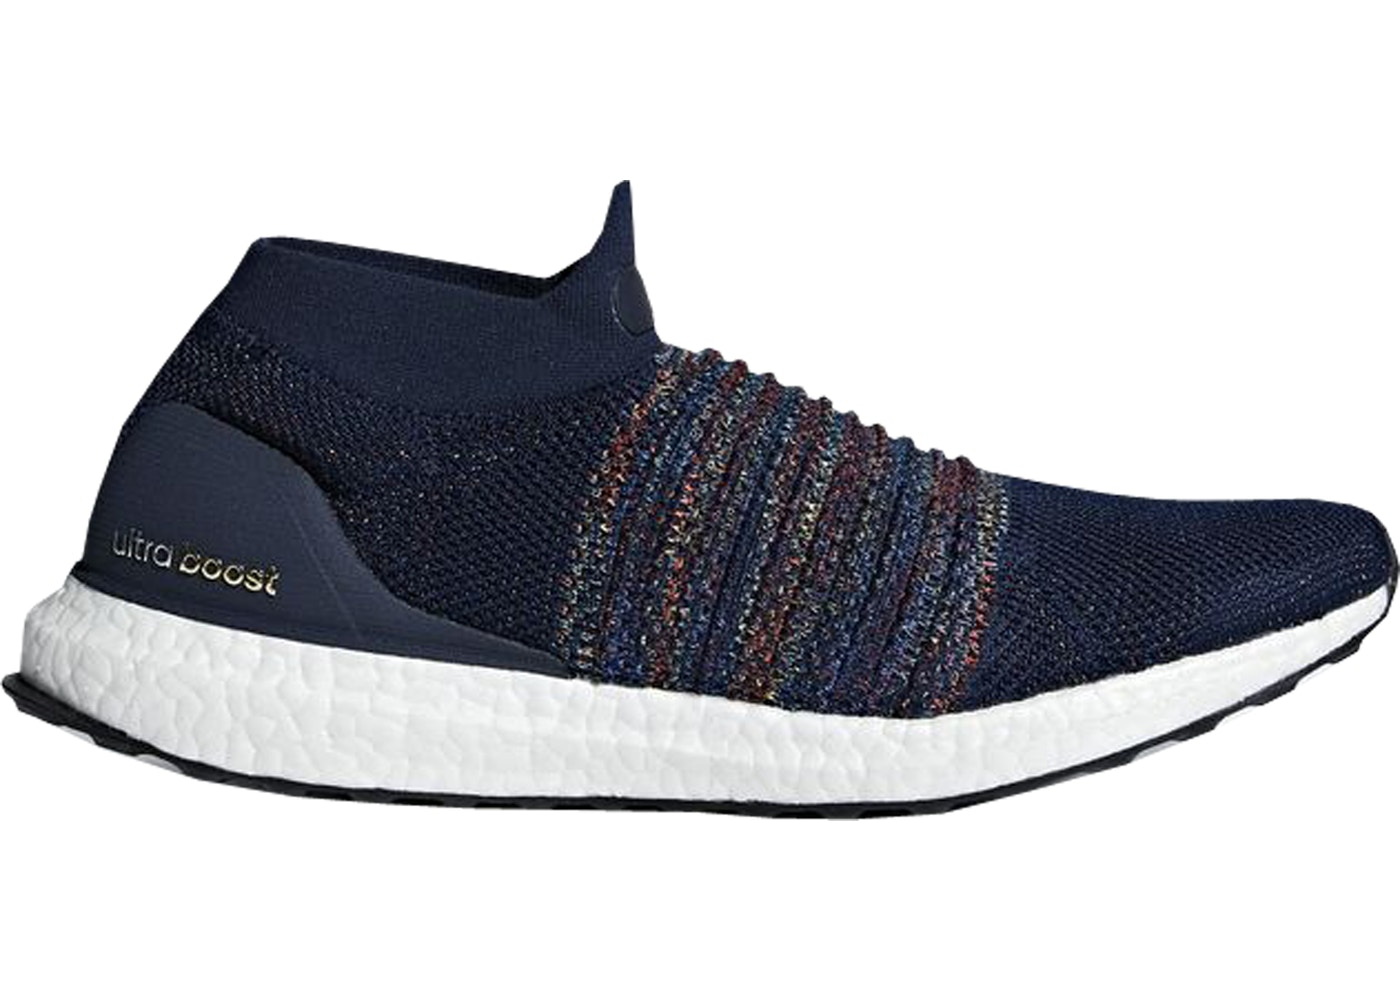 アディダス ADIDAS ウルトラ ブースト スニーカー 【 ULTRA BOOST LACELESS COLLEGIATE NAVY CORE BLACK CLOUD WHITE 】 メンズ